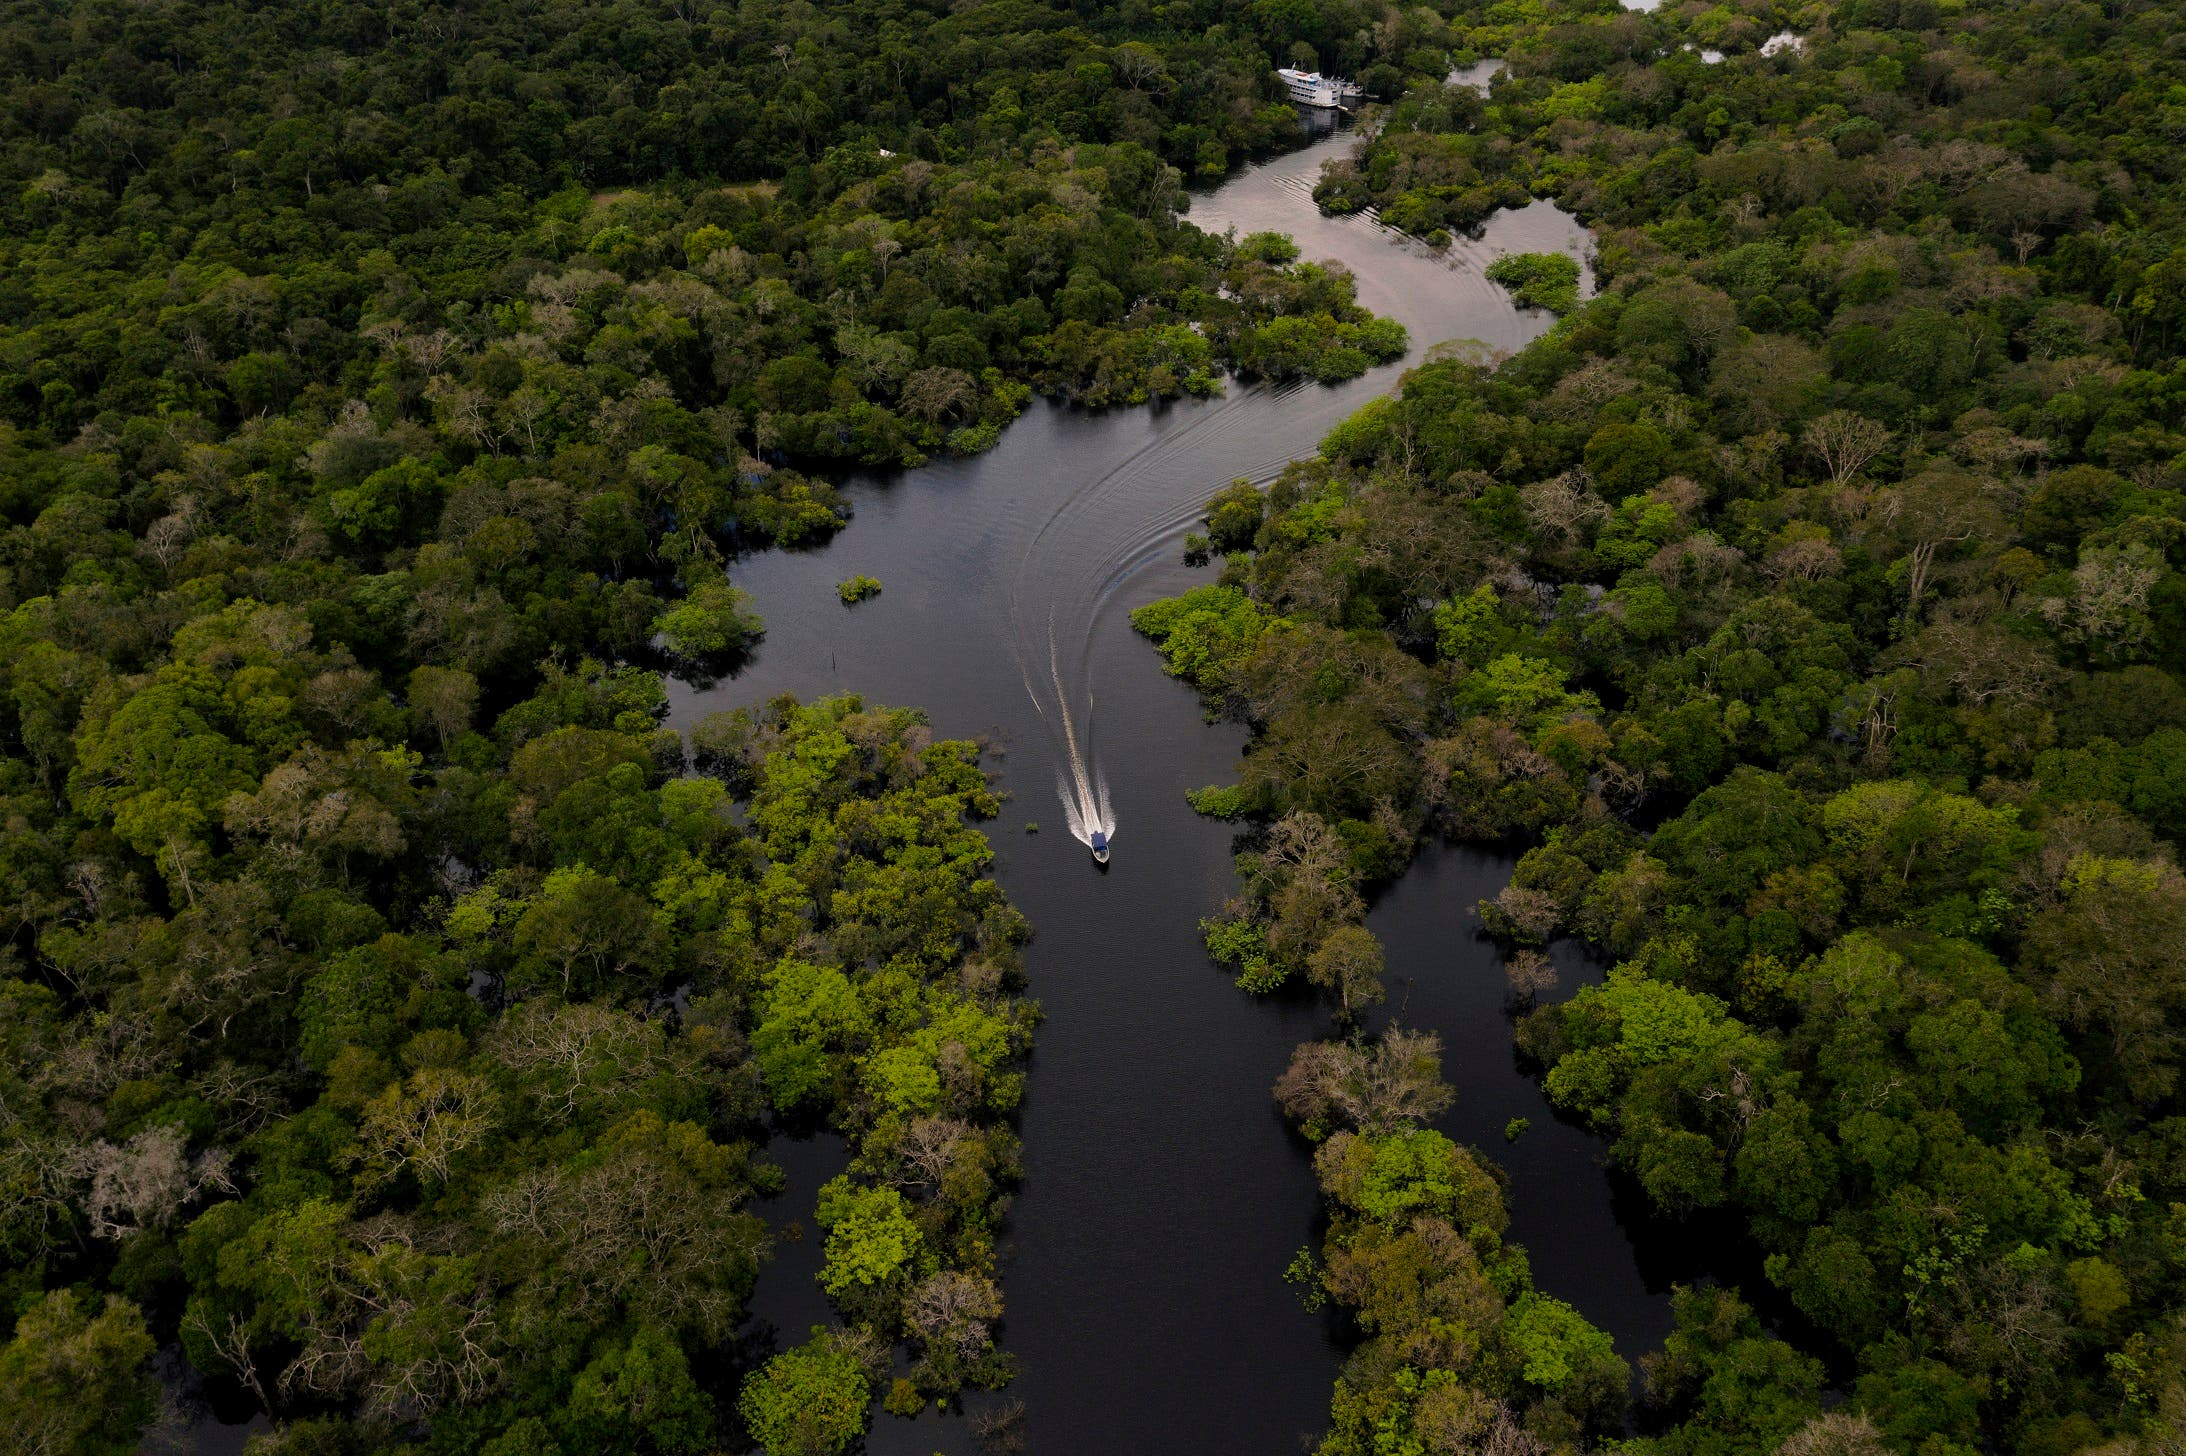 Aerial view showing a boat speeding on the Jurura river in the municipality of Carauari, in the heart of the Brazilian Amazon Forest, on March 15, 2020. Many young people in the heart of the Amazon rainforest choose their community over the city. (Stock image)